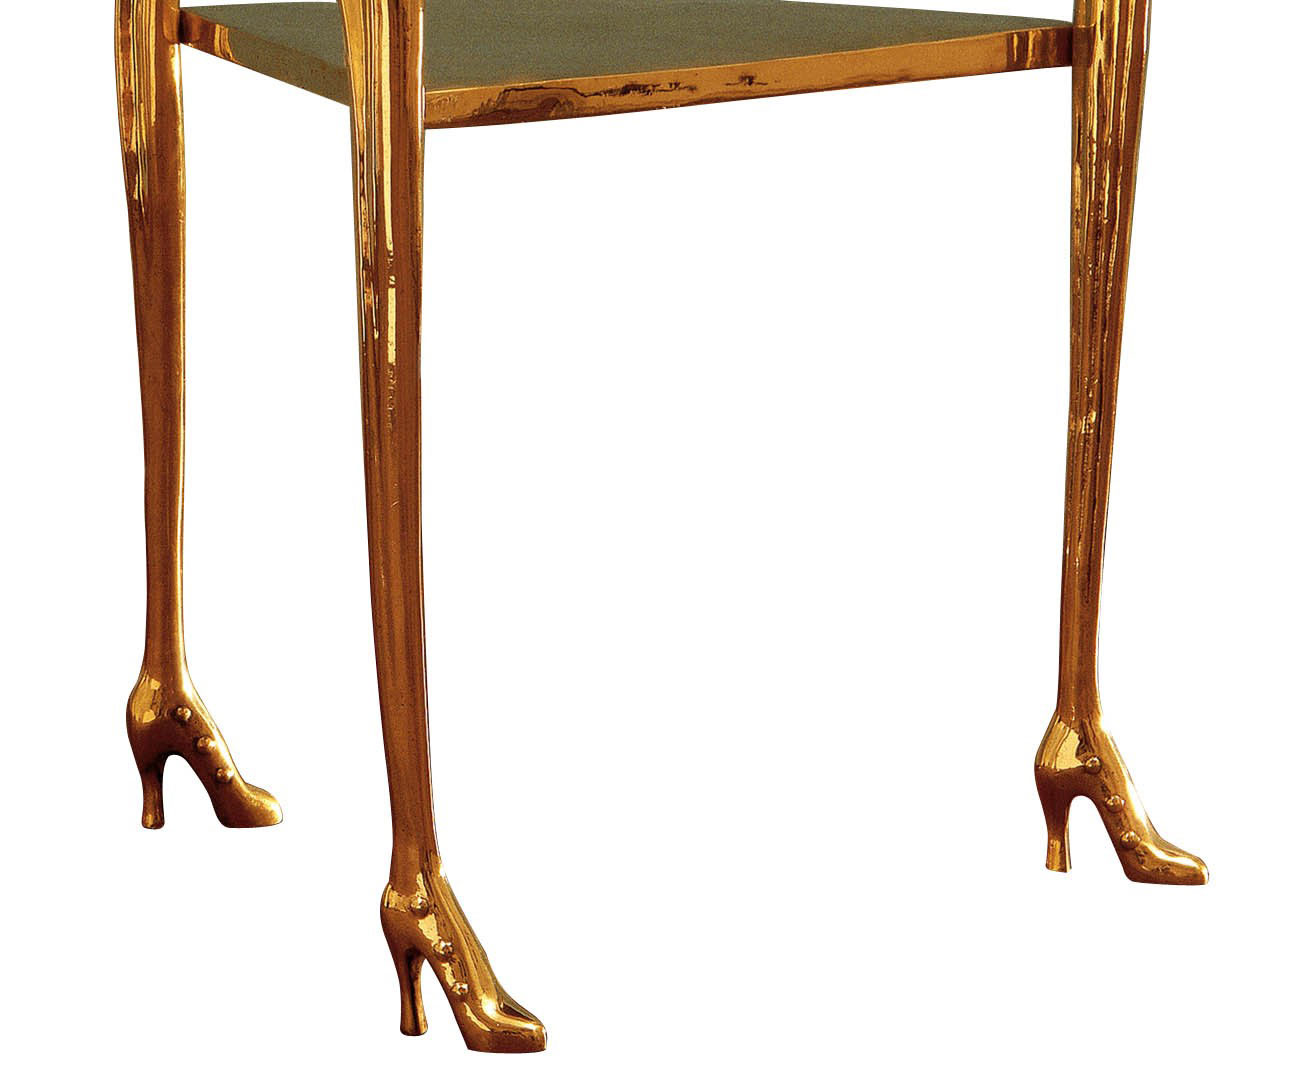 bd furniture and decor.htm leda chair by salvador dali   wood furniture biz  leda chair by salvador dali   wood